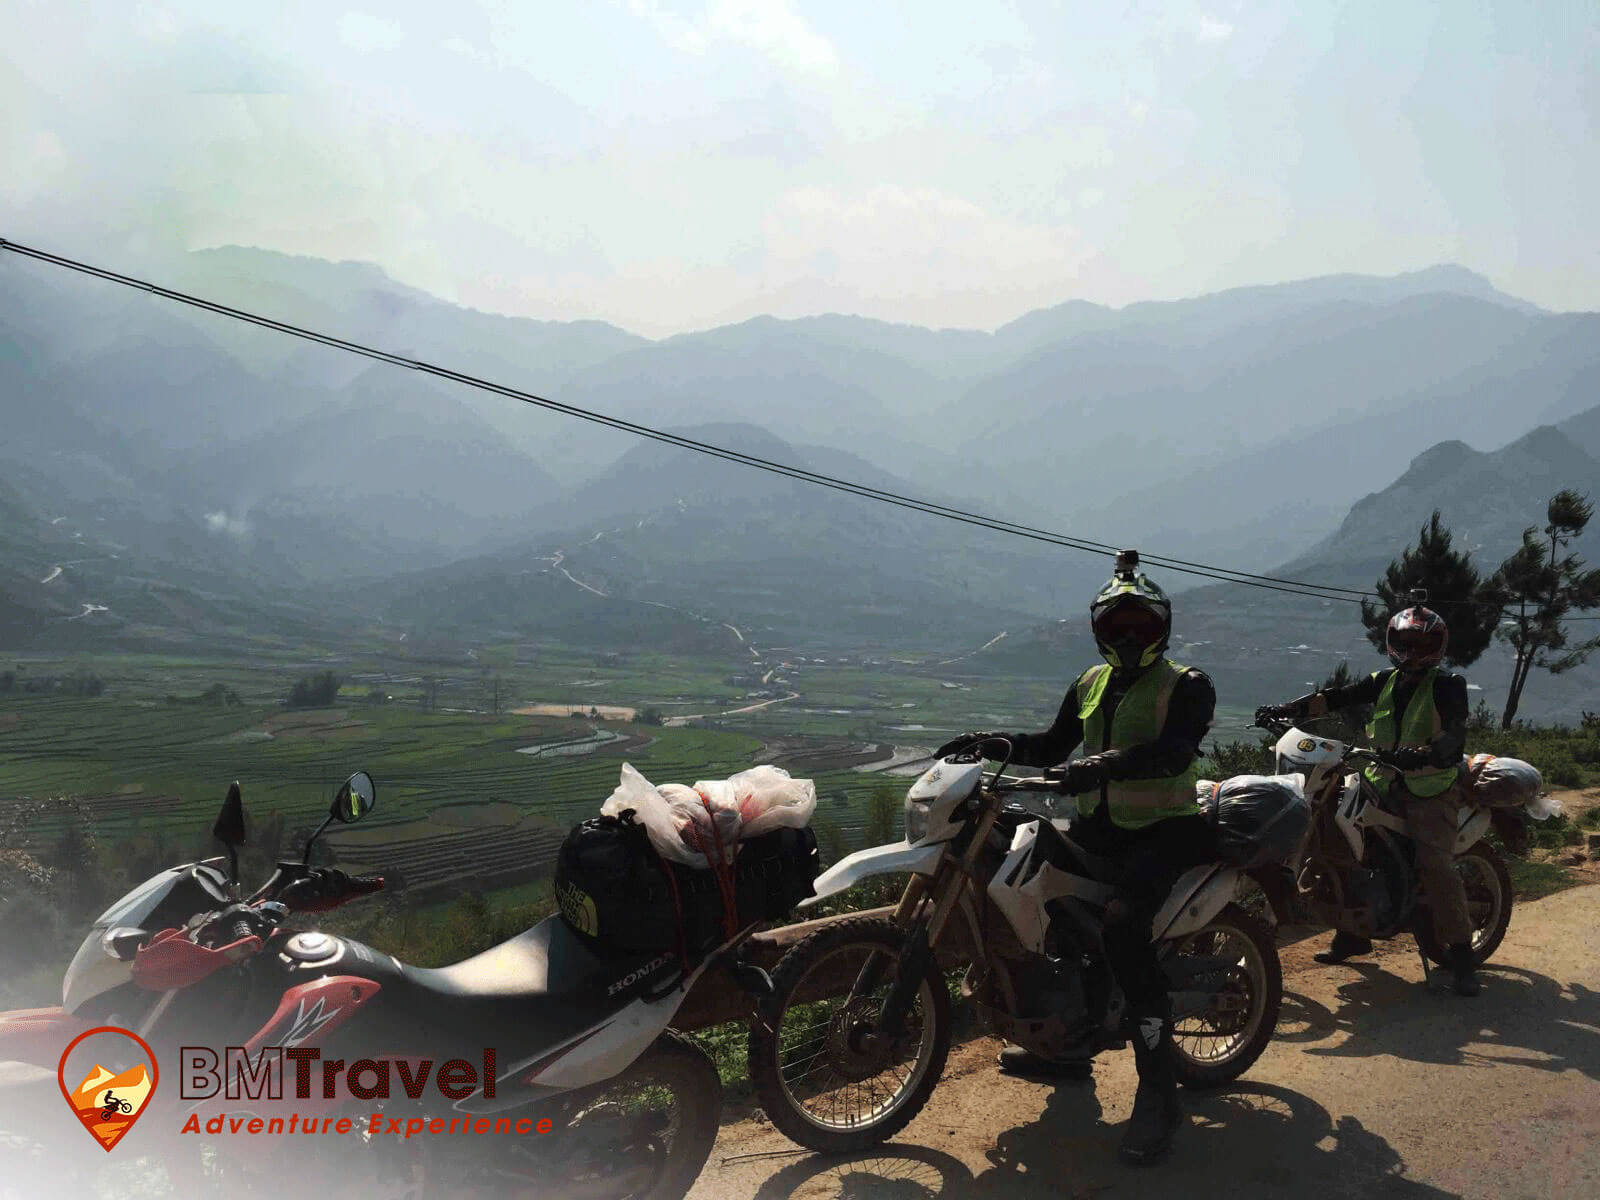 Northwest-vietnam-motorbike-tours-6-day-day-1